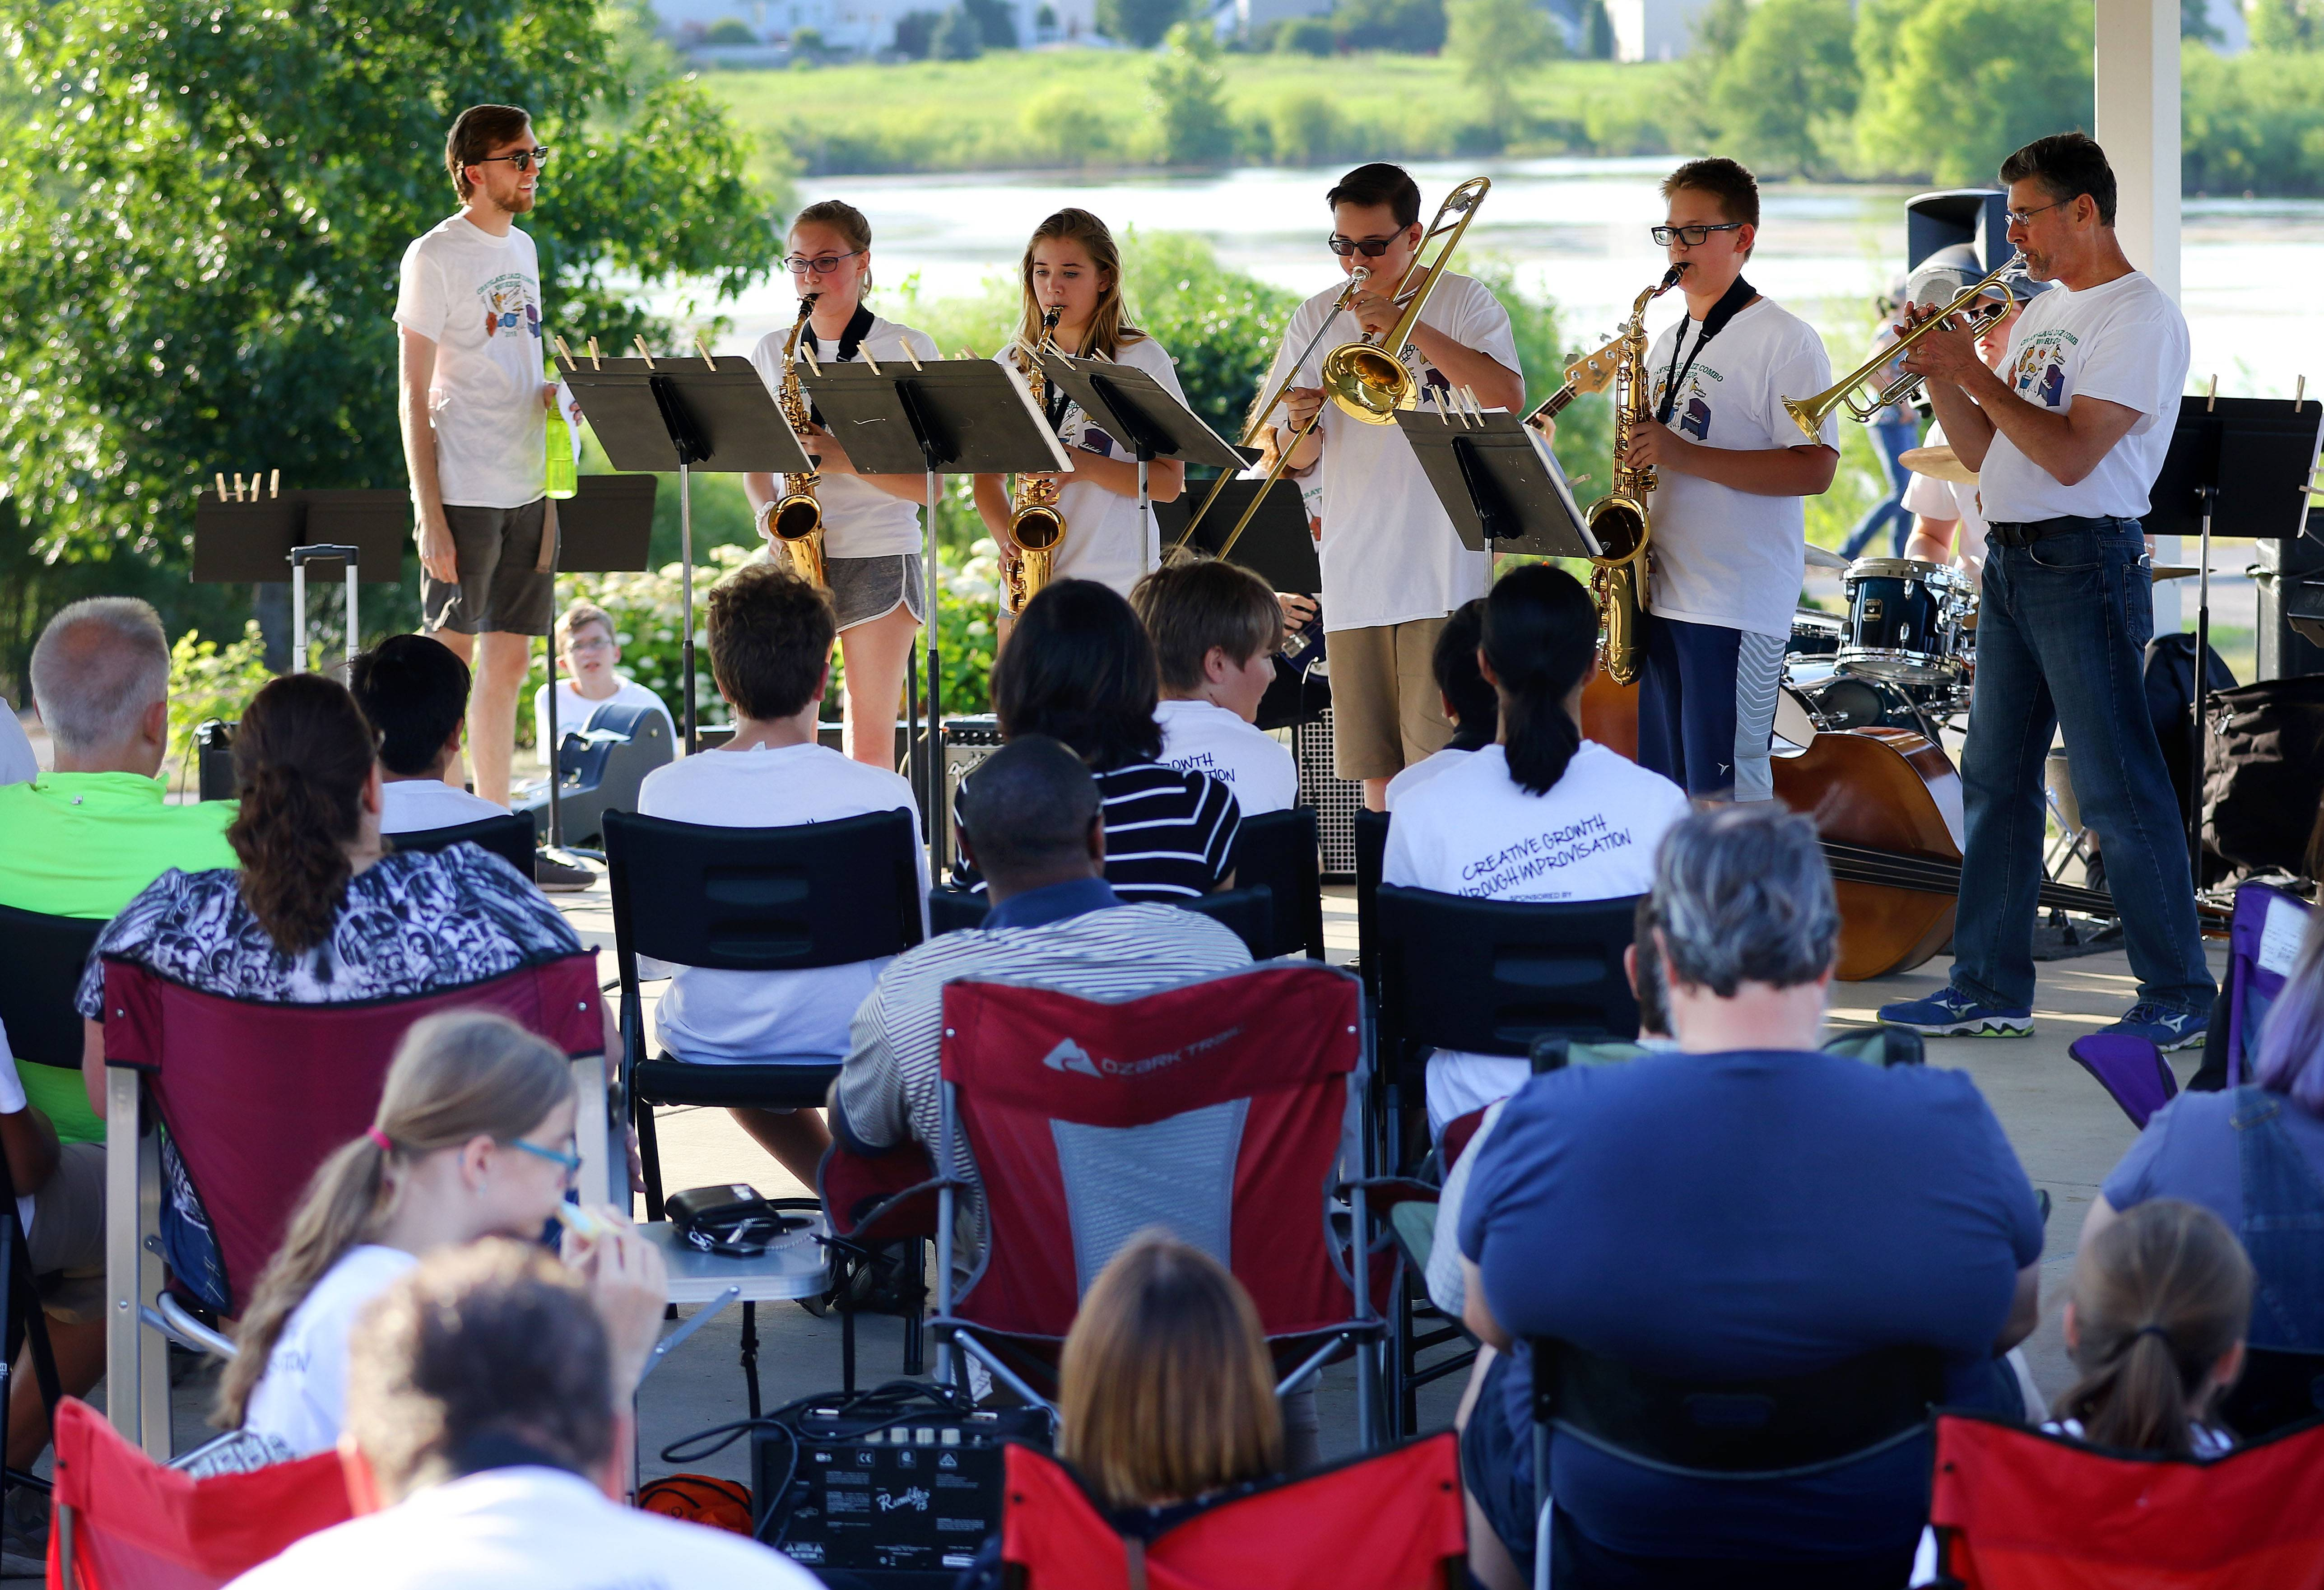 Members of the Grayslake Jazz Combo Workshop perform in the gazebo Wednesday evening during Midweek Break on the Lake at the Round Lake Beach Cultural Center.